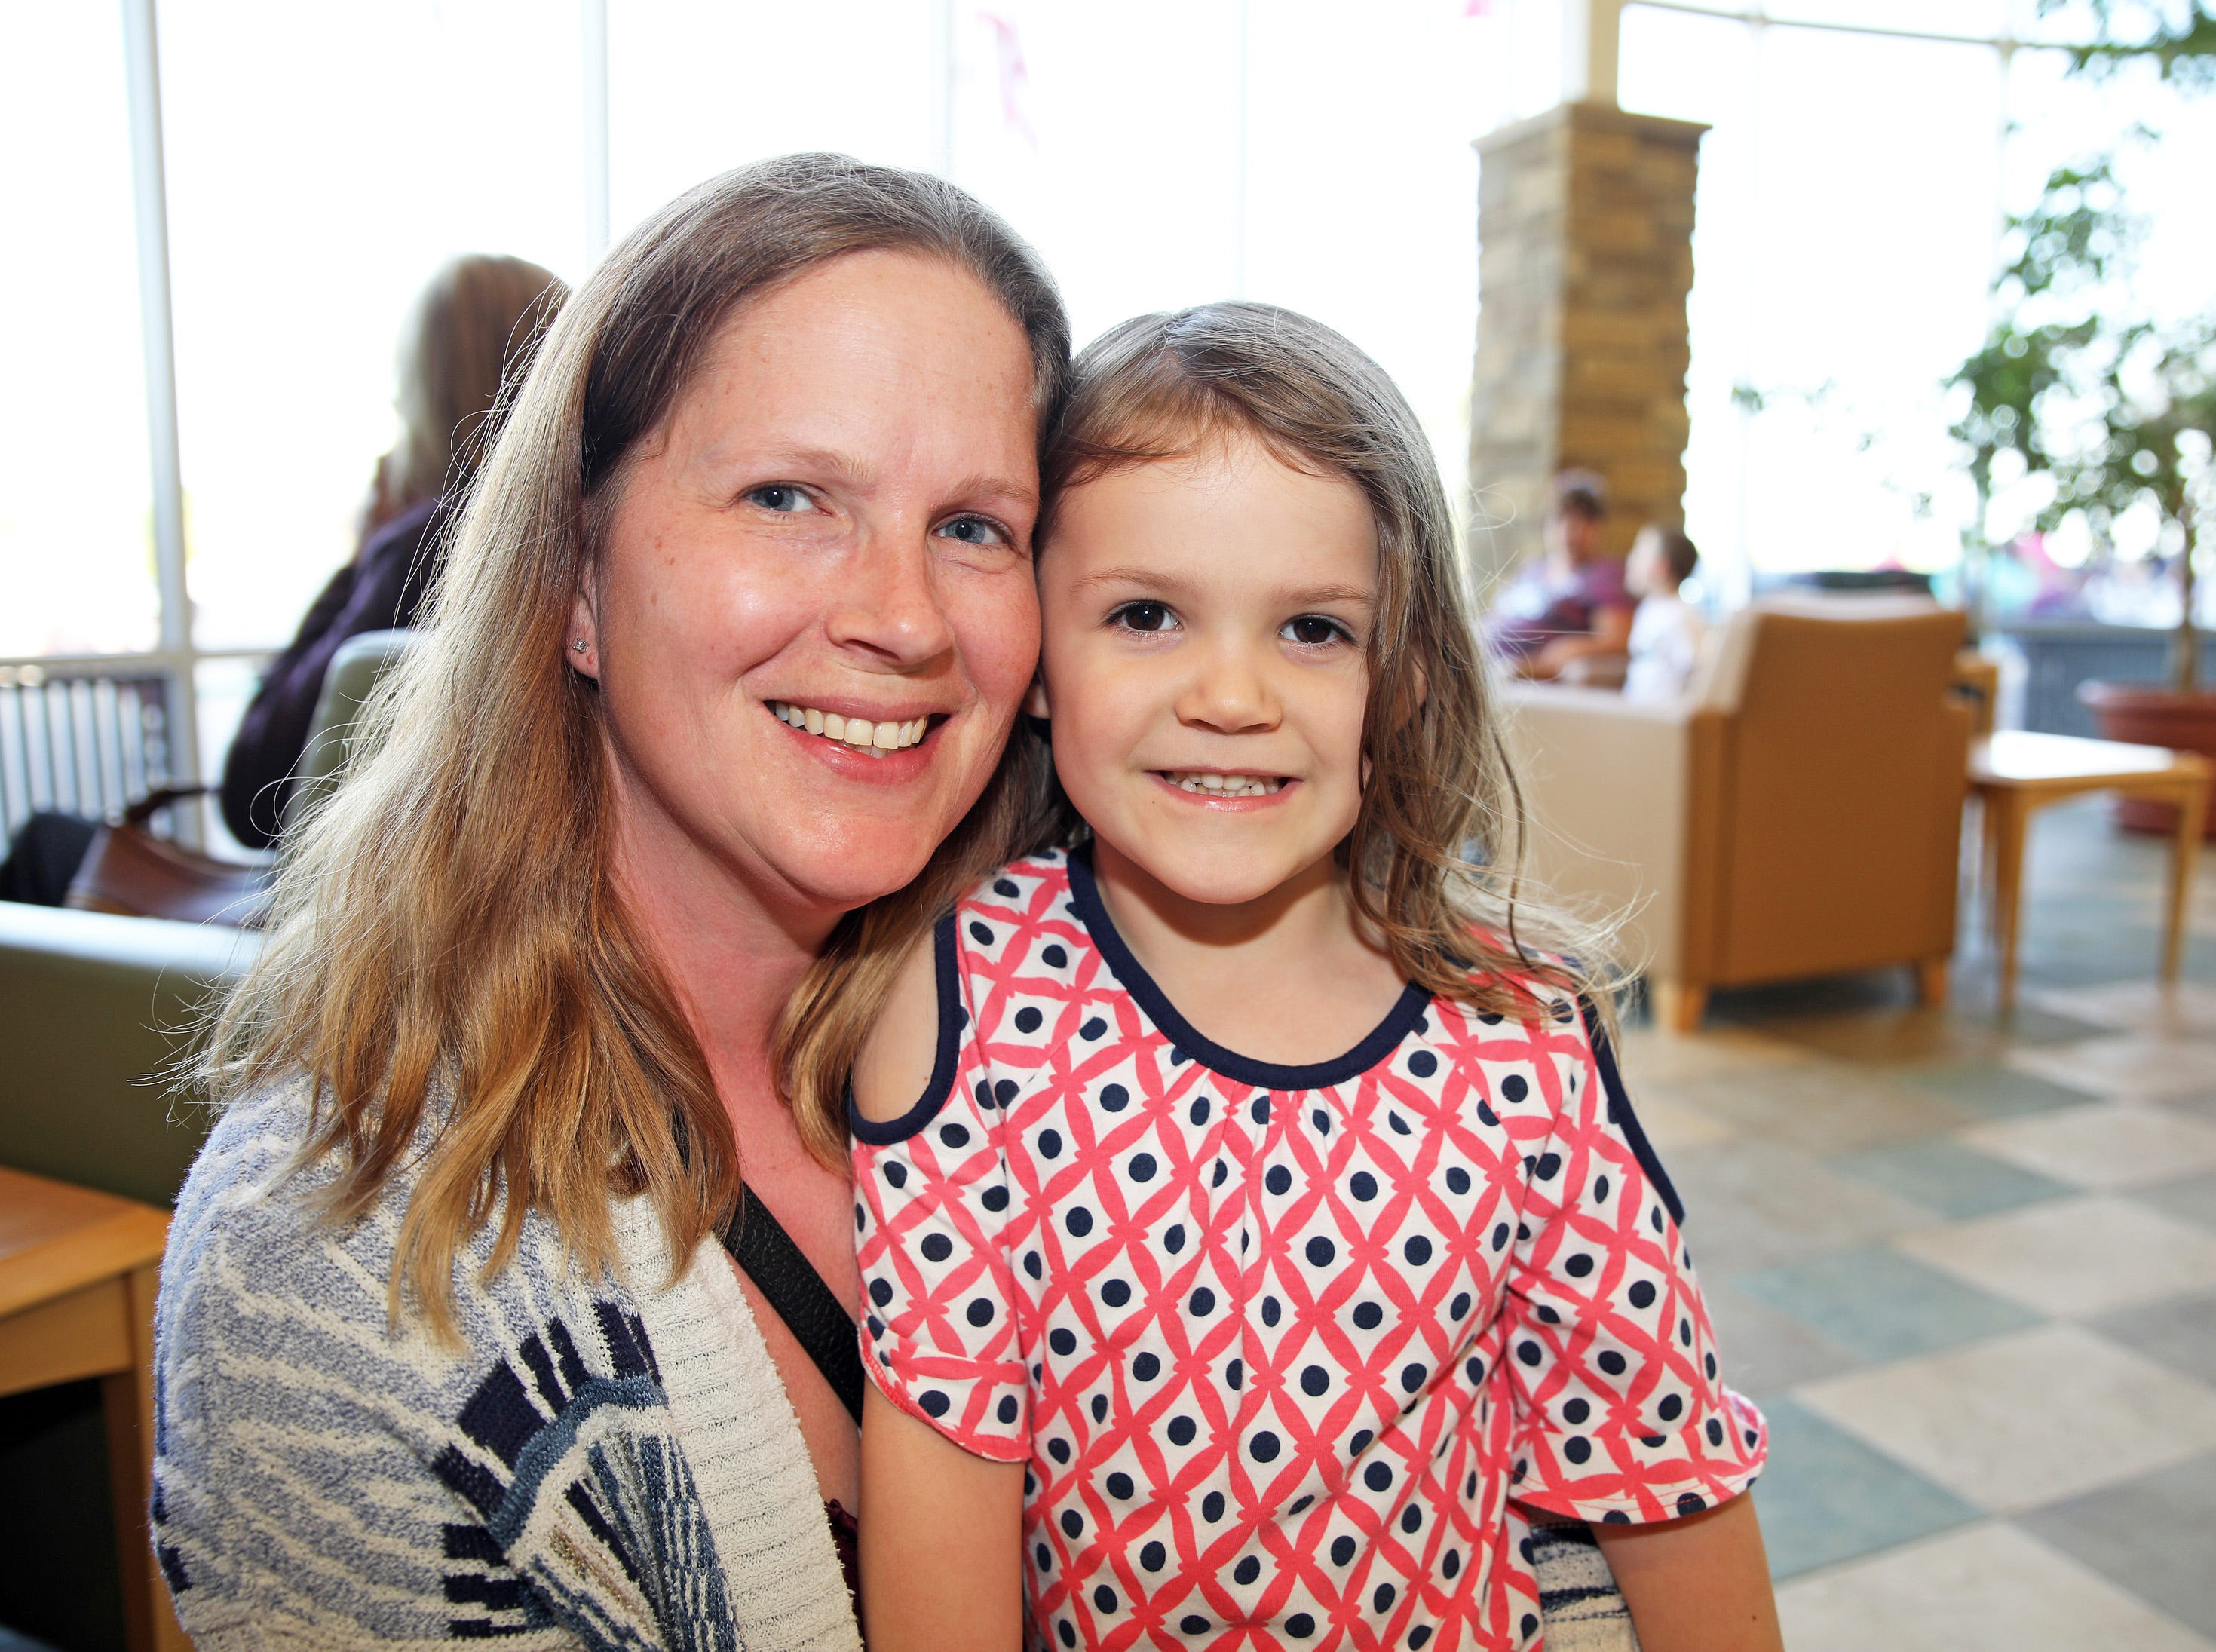 Wendy and Allyson Tuffin, 4, of Ankeny wait to take a tour of the police station during the Ankeny Police Week Community Picnic on Tuesday, May 14, 2019 at the Ankeny Police Headquarters located at 411 SW Ordnance Road. The event featured a tour of the police station, magician Jonathon May, free Chick Fil-A sandwiches for the first 1,000 guests, free Kona Ice, temporary tattoos, and a great opportunity to meet the officers who protect and serve the city of Ankeny.